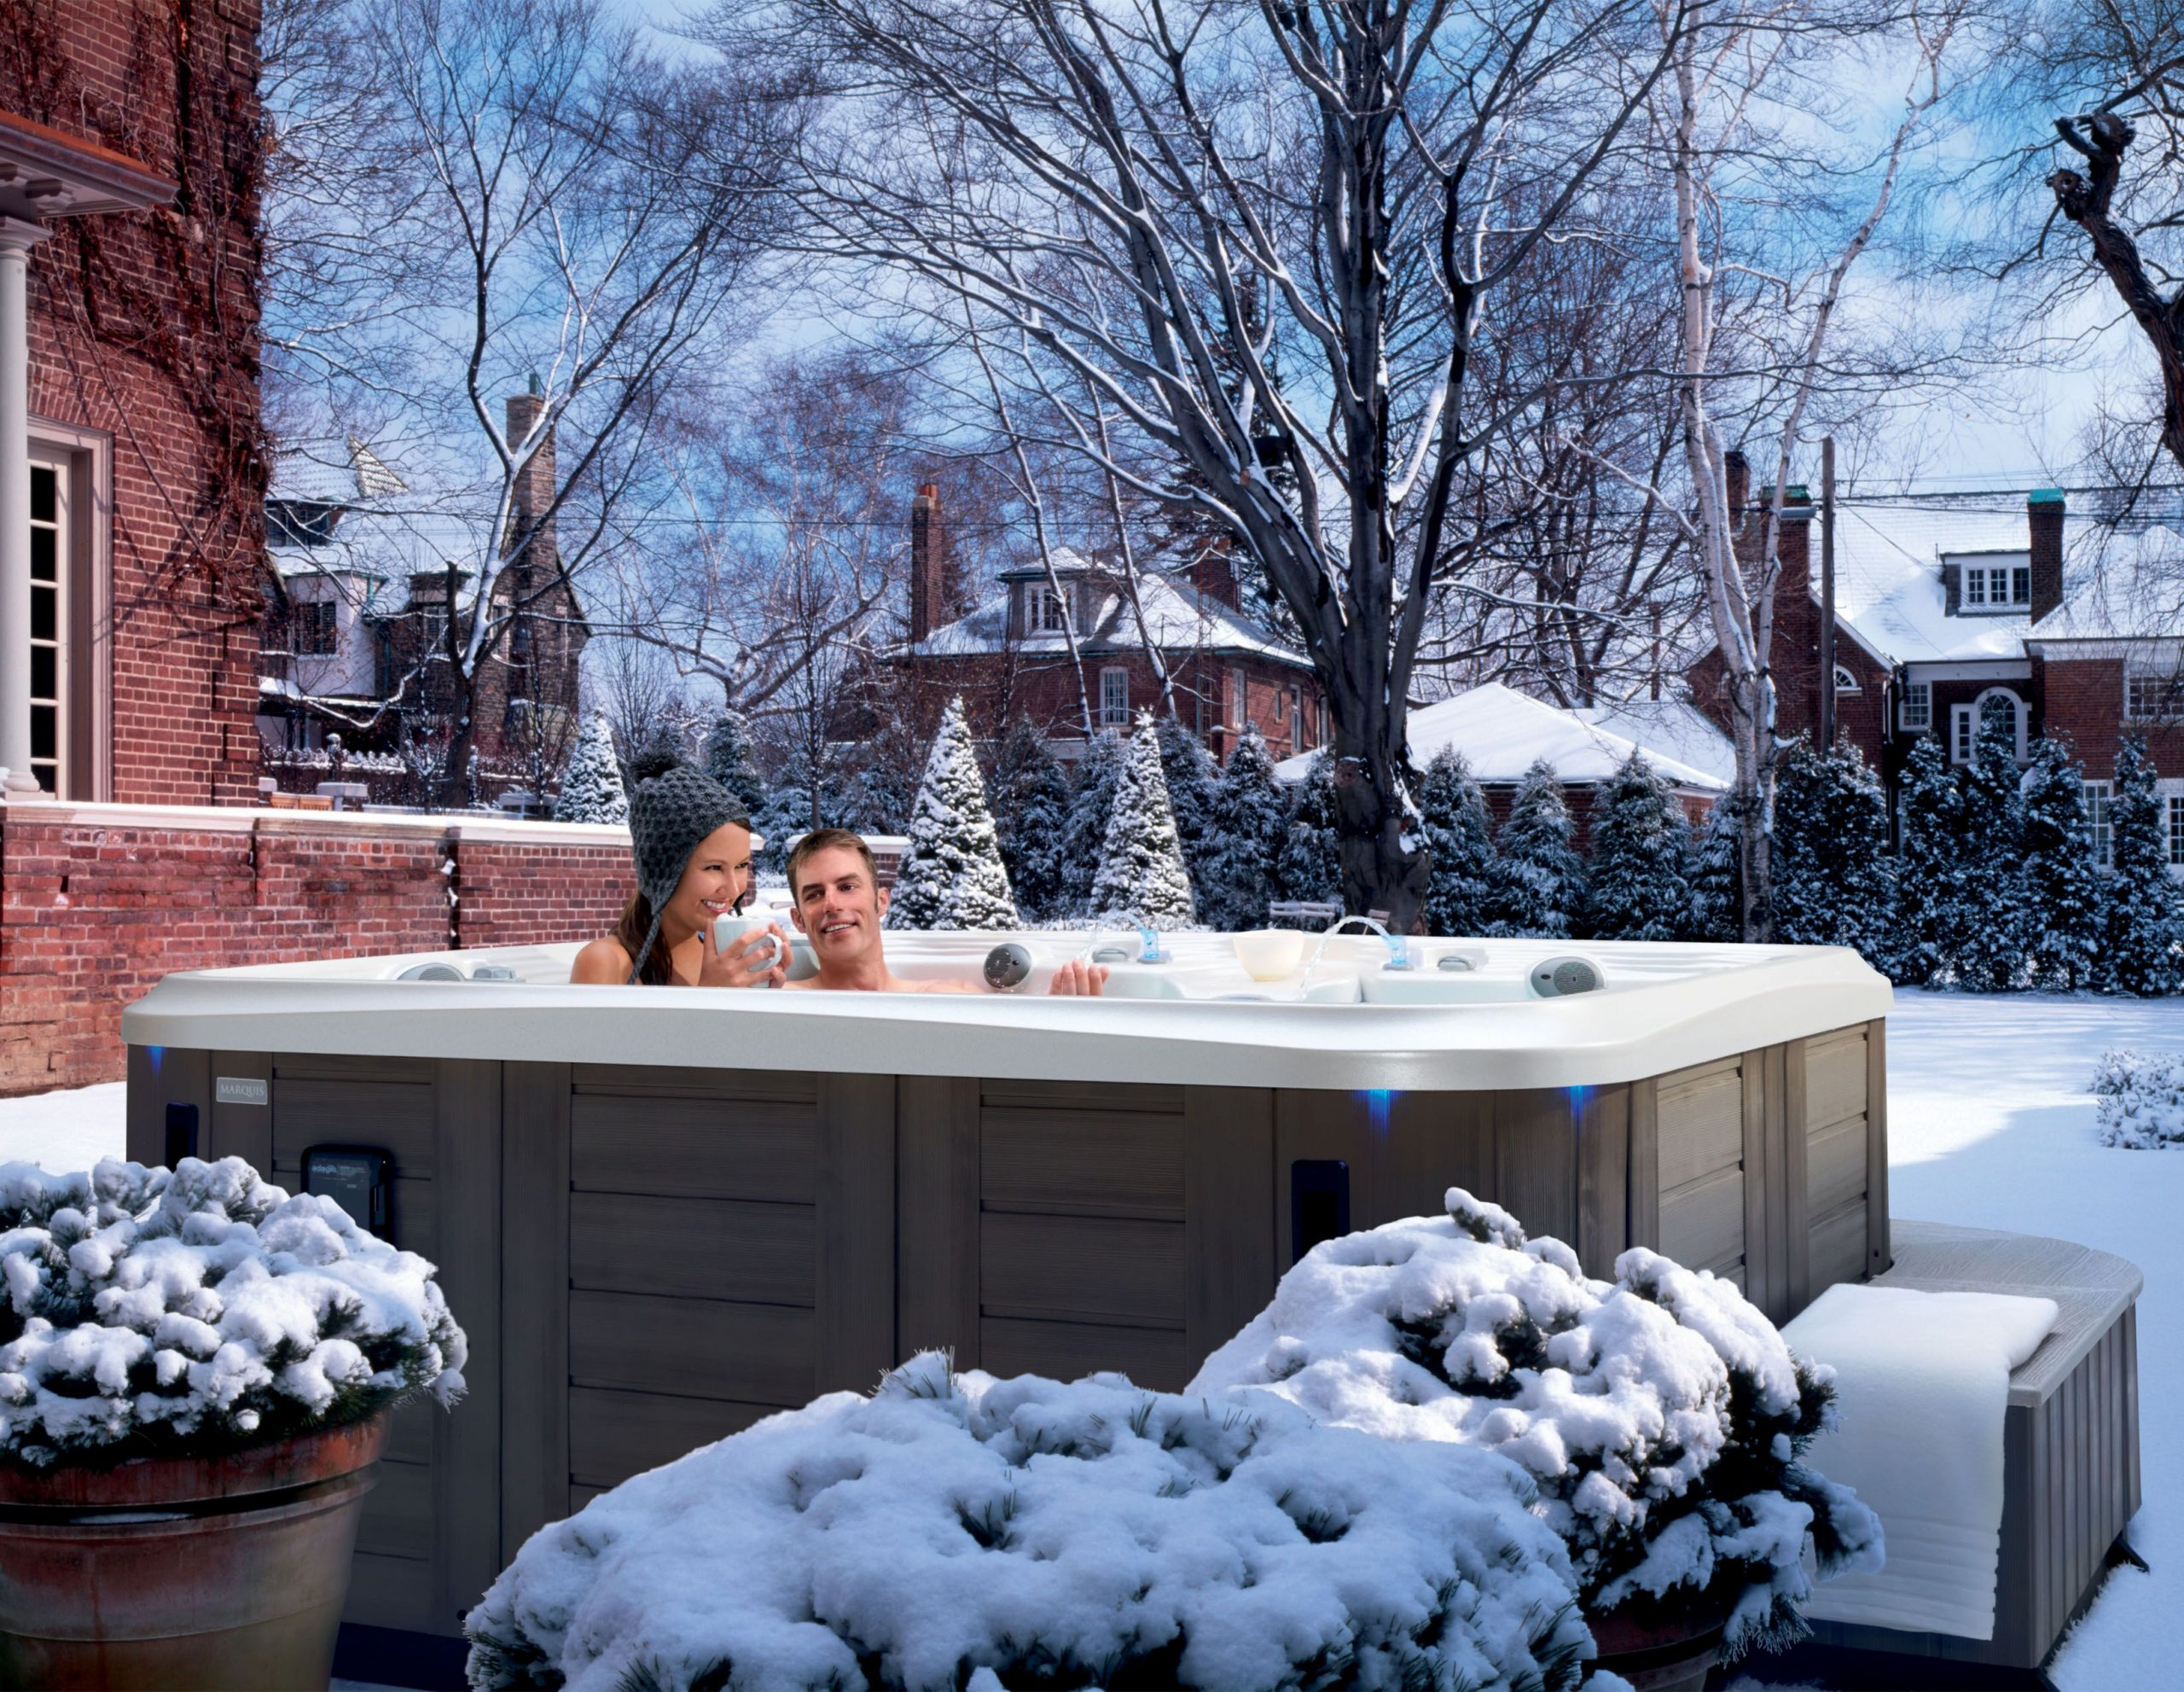 Spice Up Your Date Night with a Hot Tub